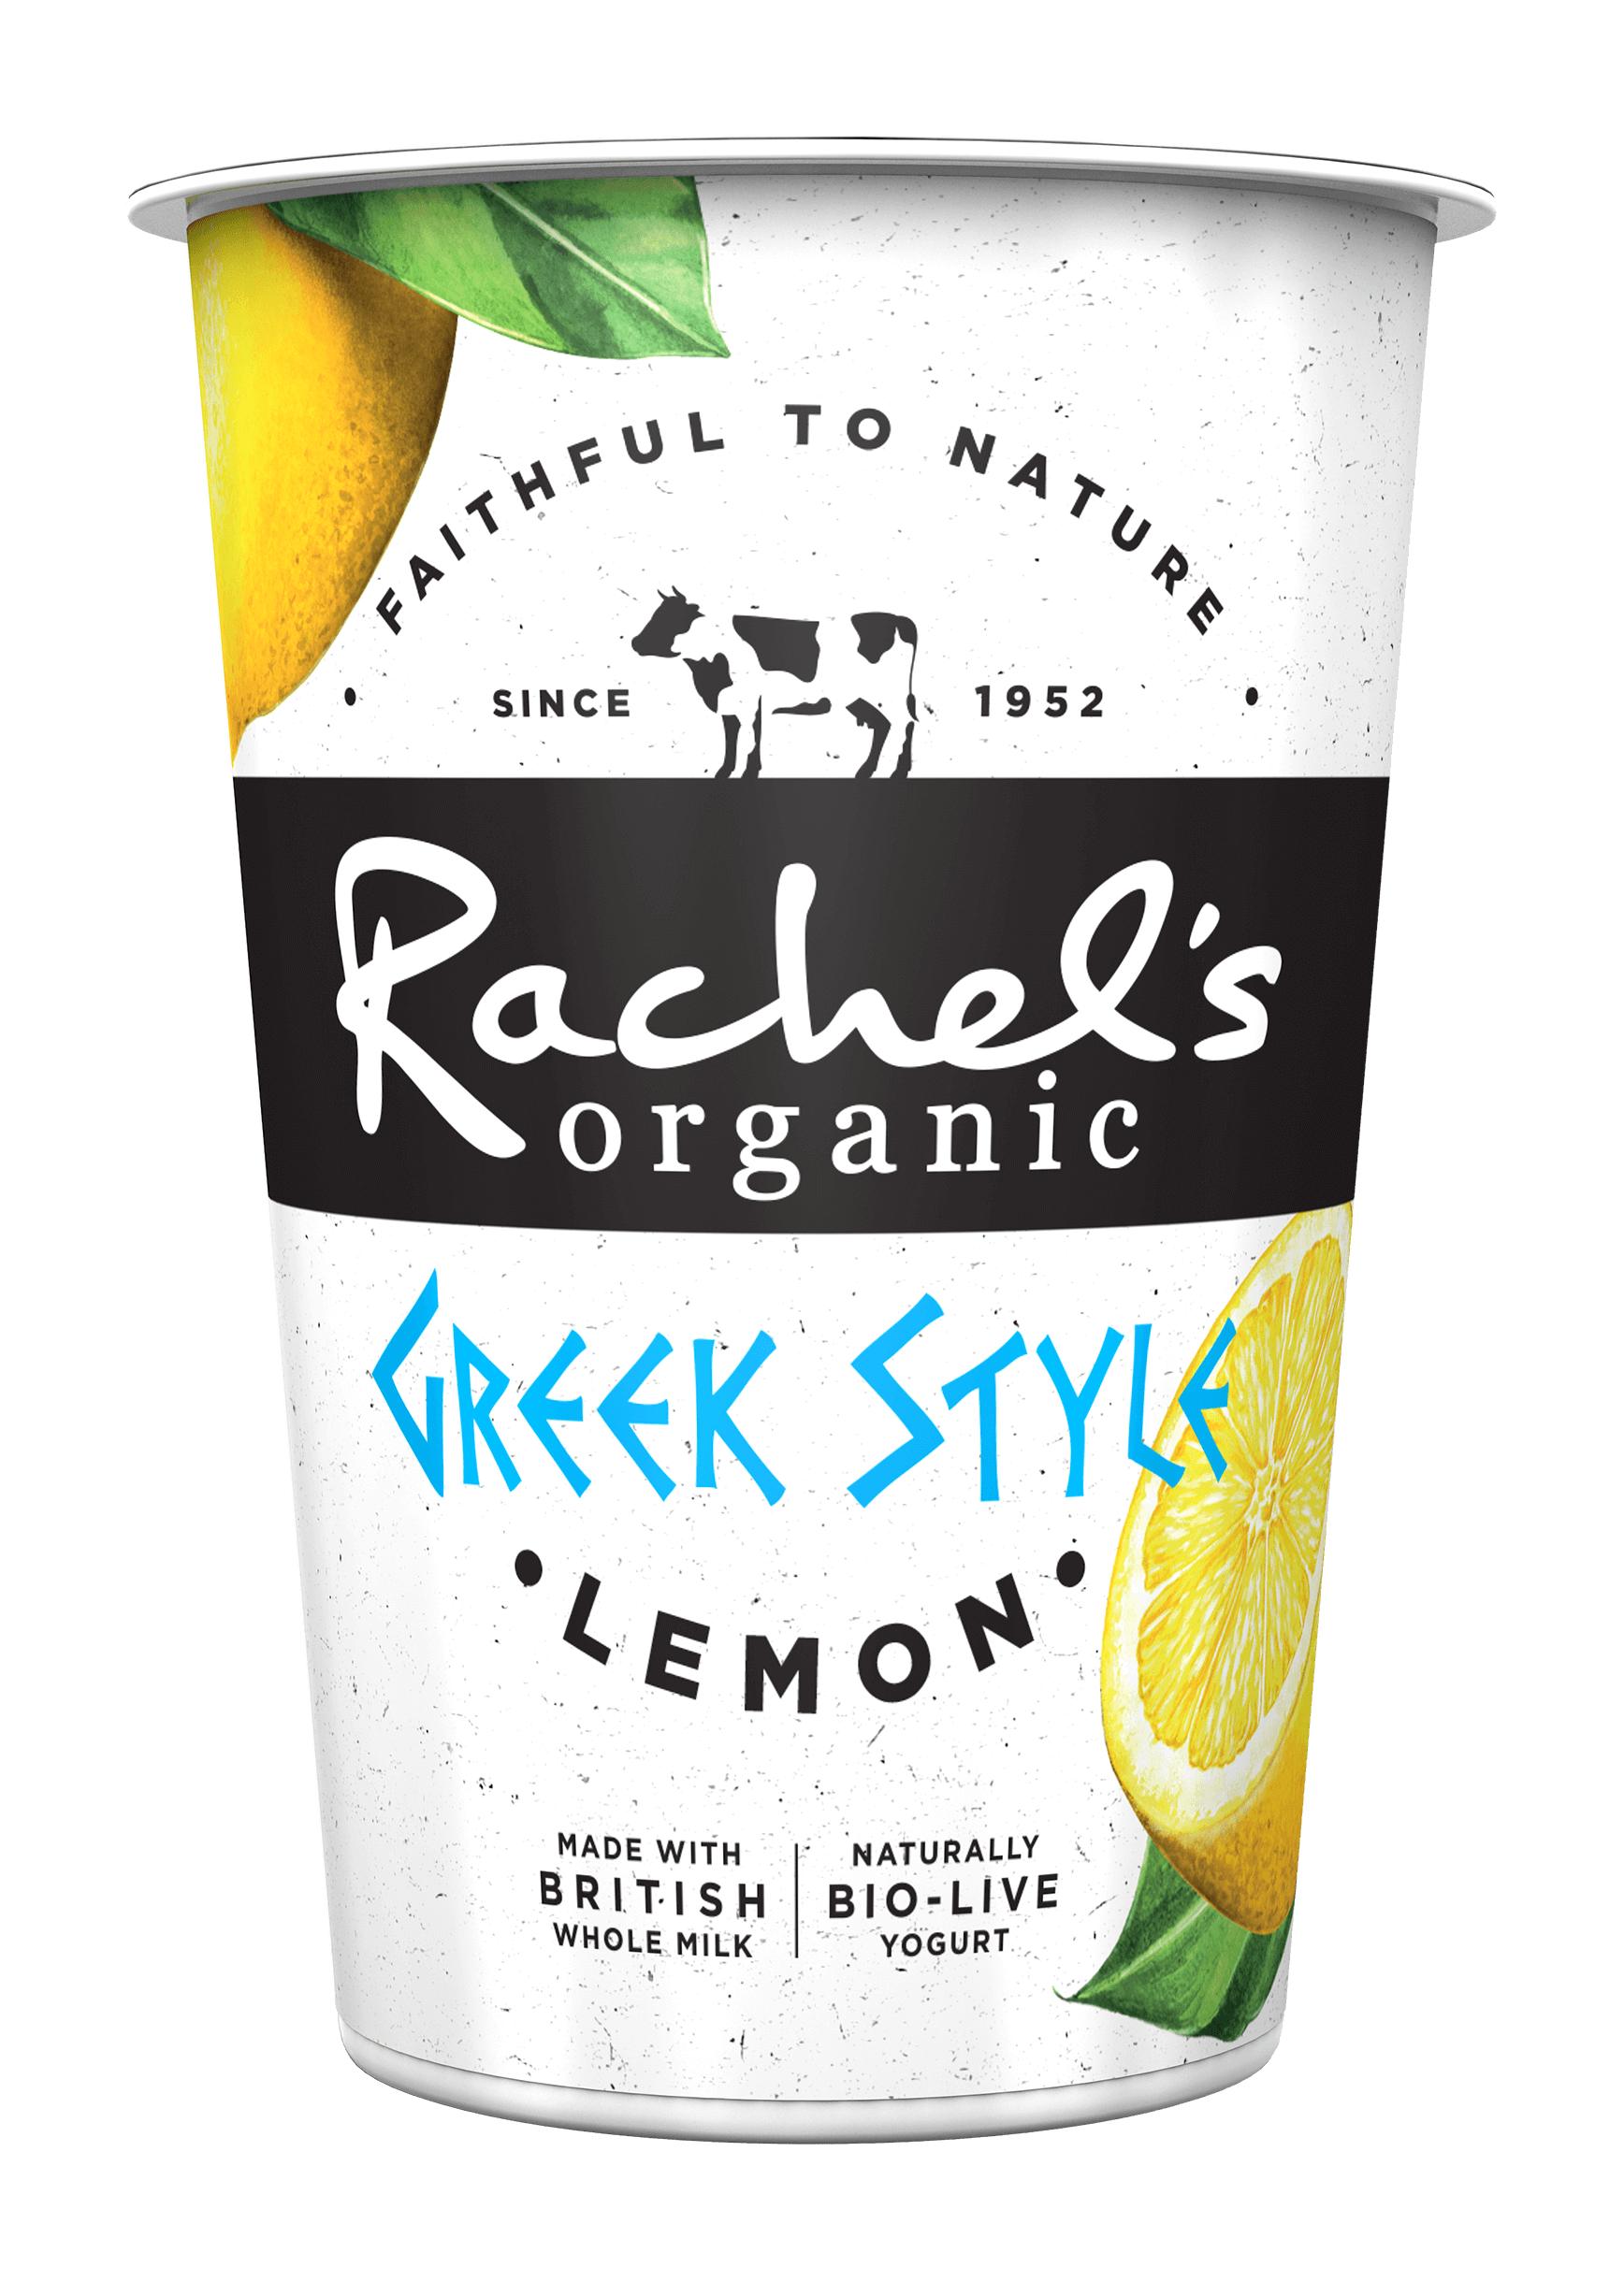 https://www.rachelsorganic.co.uk/wp-content/uploads/2019/12/5021638109755-3D-RACHELS-450G-POT-GREEK-STYLE-LEMON.png